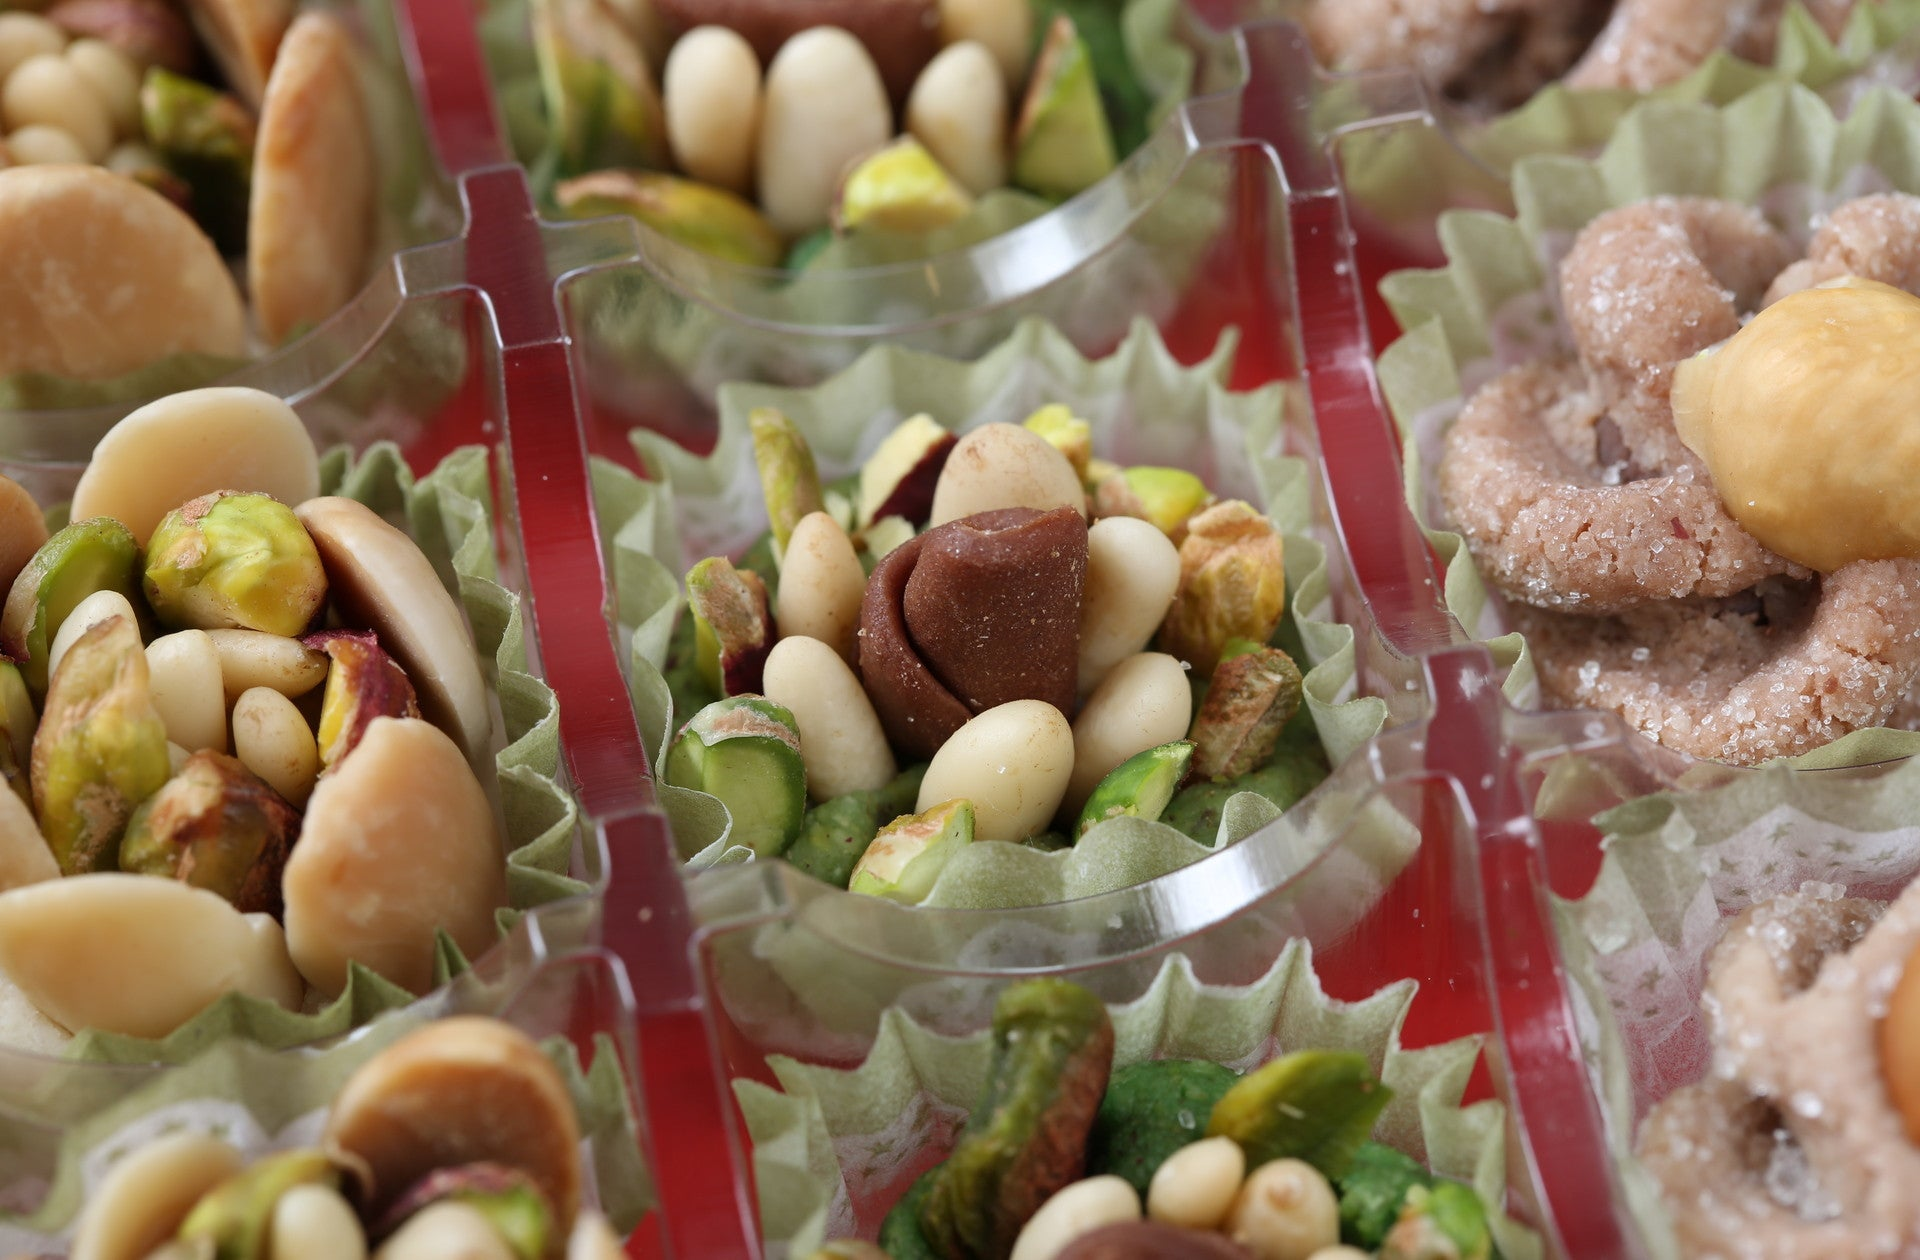 Our gourmet concoction of sugar and organic nuts come together for a luxurious and heavenly experience. Each handmade jewel is comprised of premium nuts blended to a standard of perfection, and adorned with an assortment of pistachios, pine nuts, hazelnuts, and almonds.